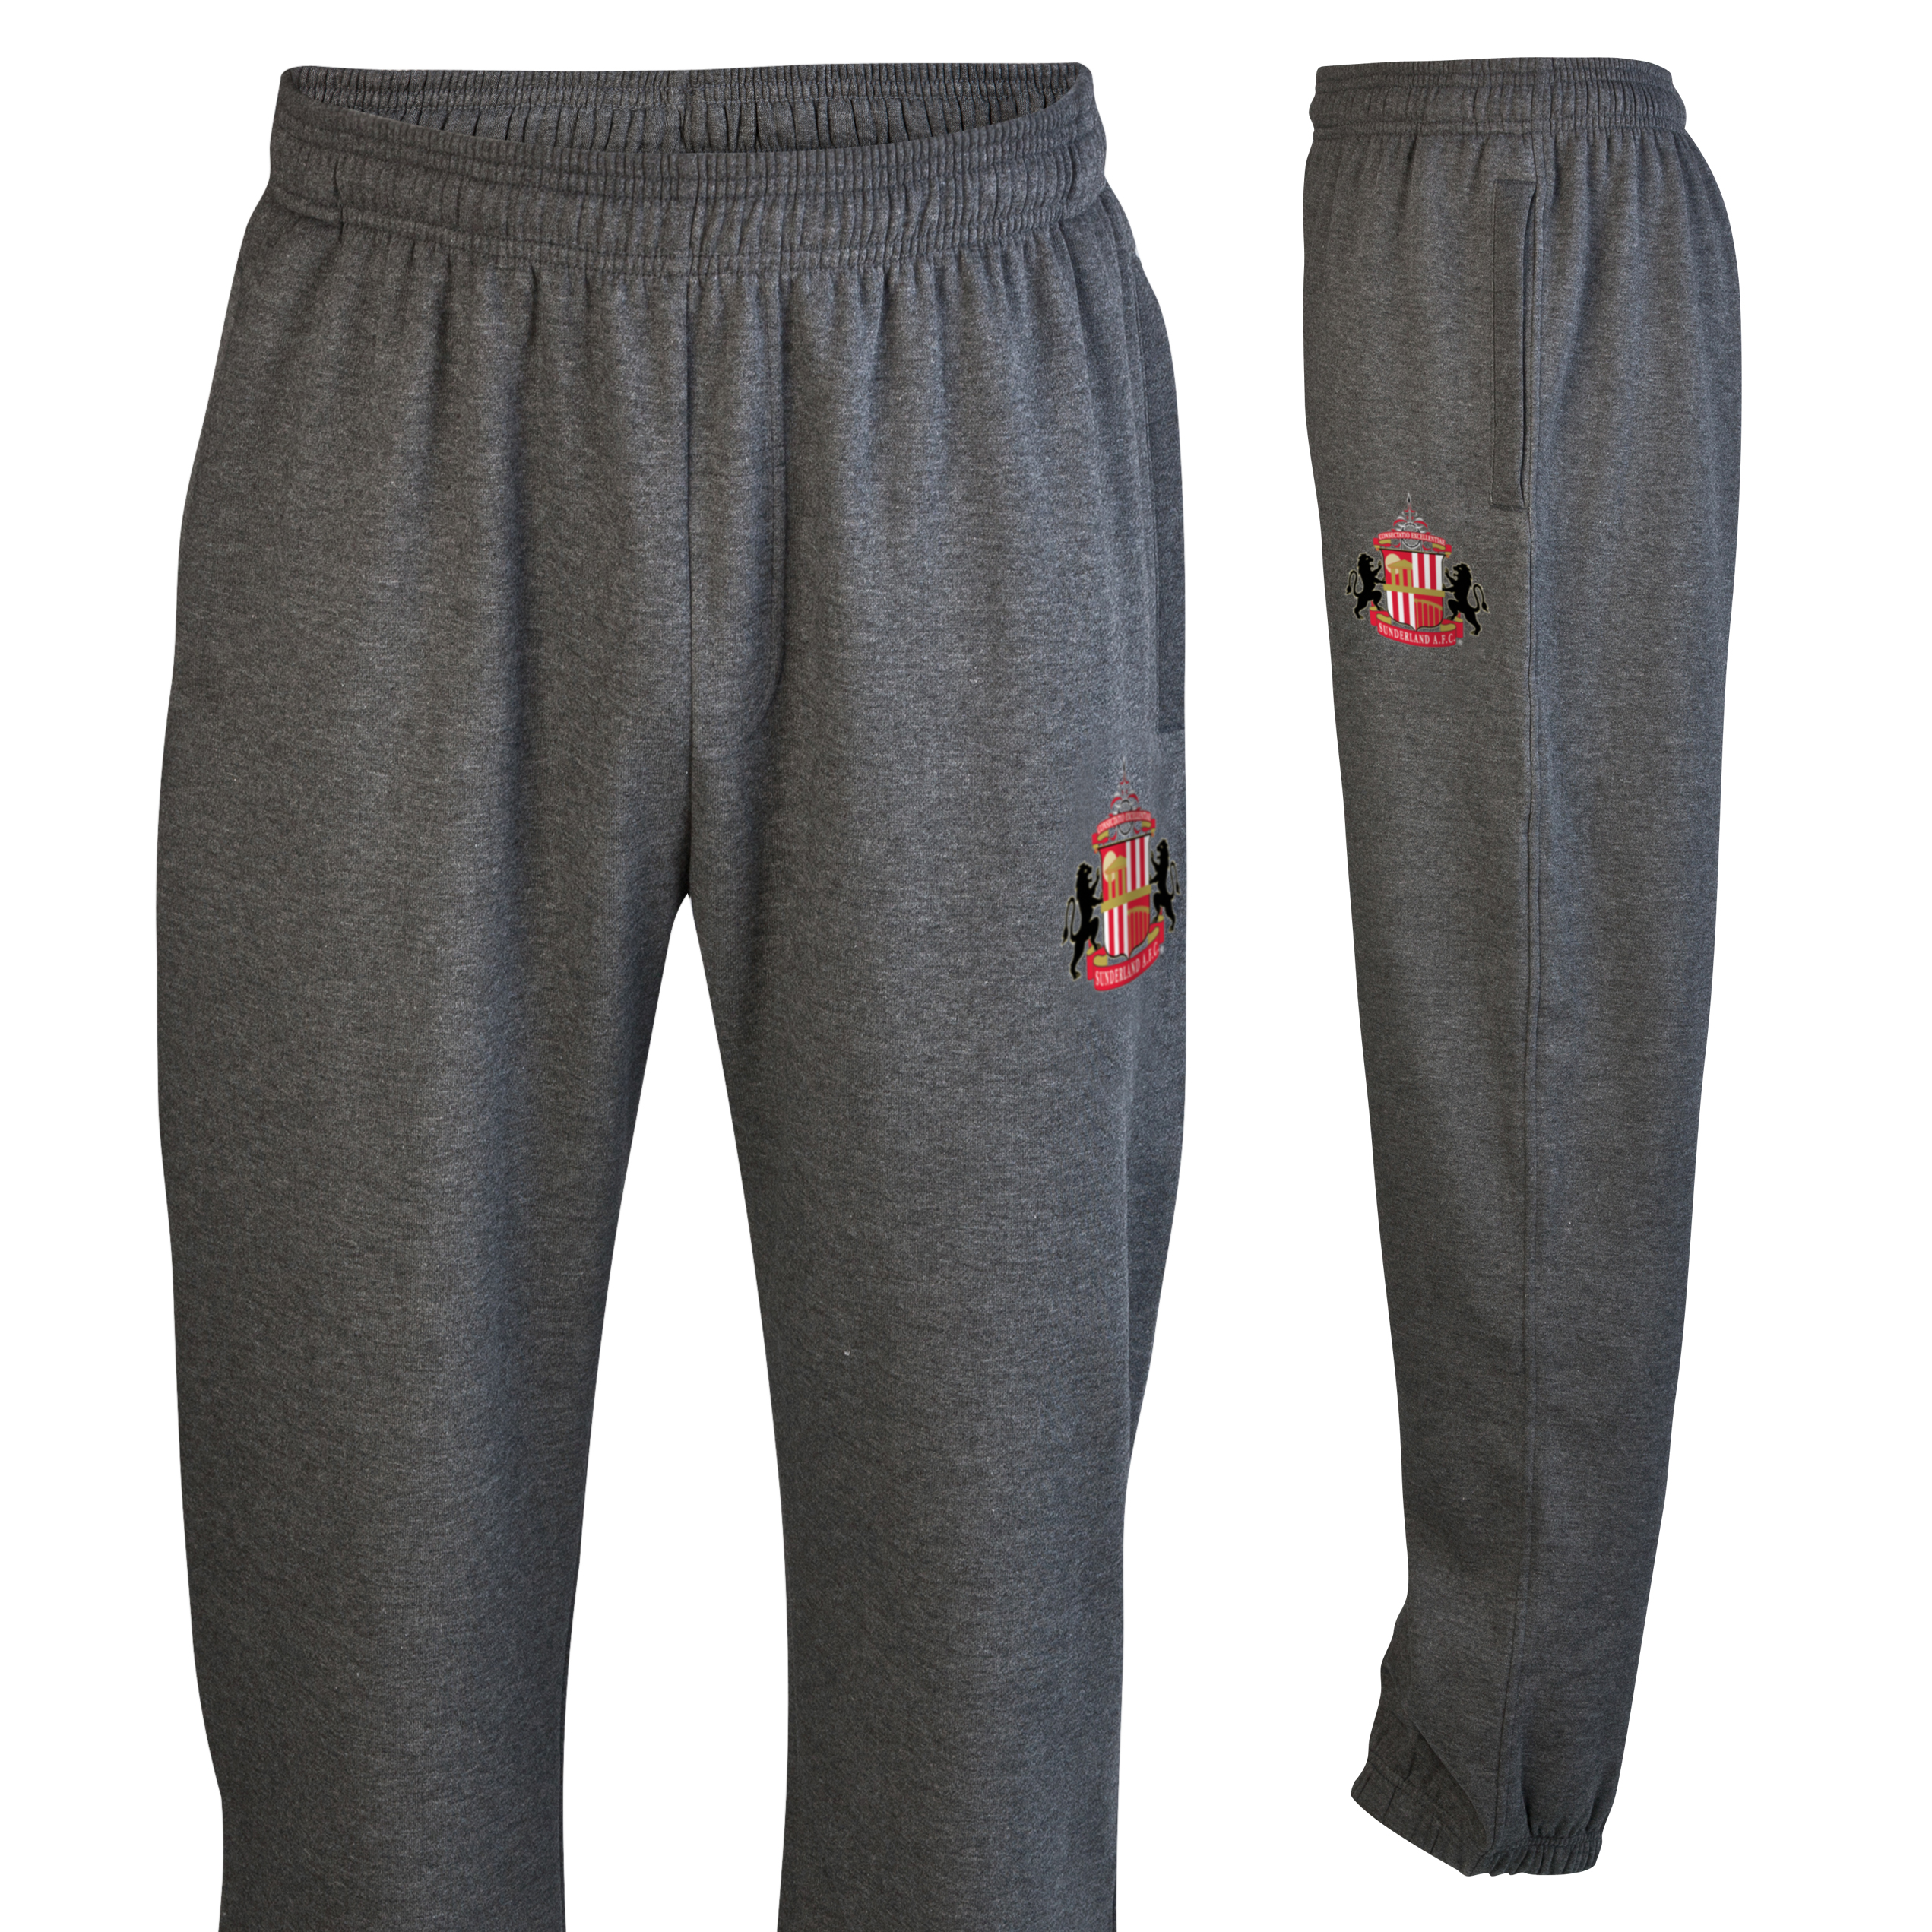 Sunderland Essential Jukebox Jog Pants - Charcoal Marl